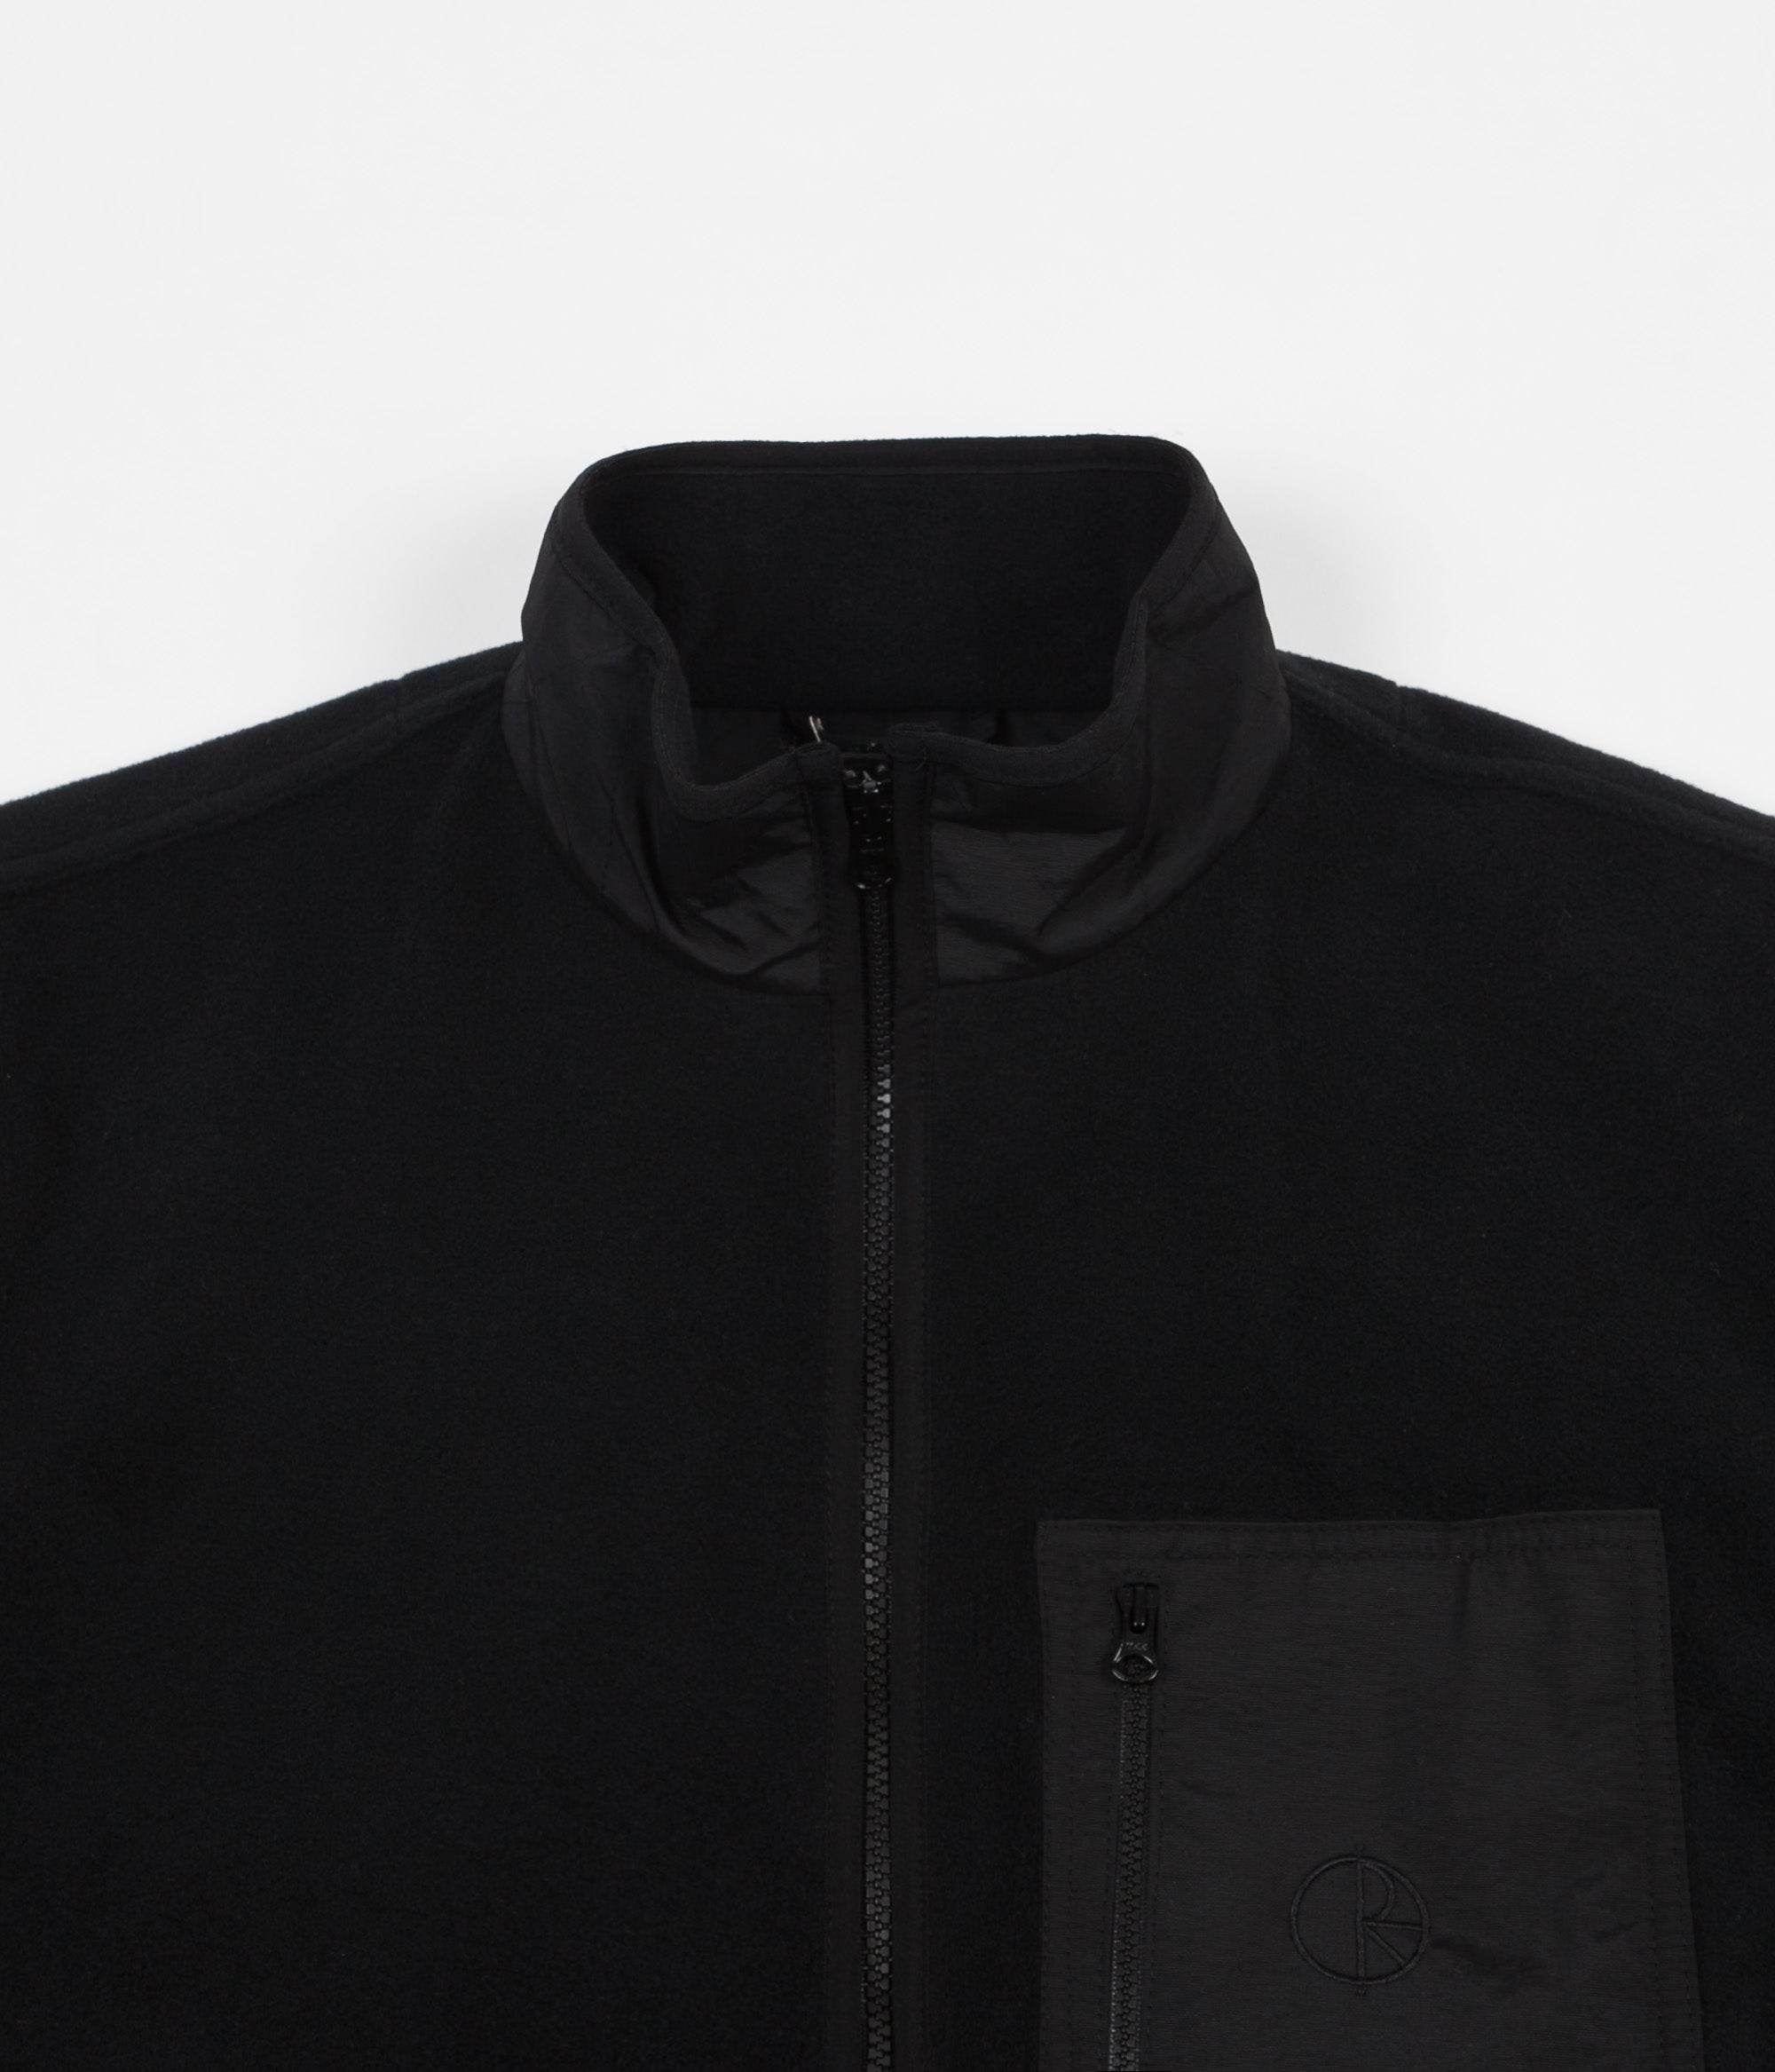 Polar Stenstrom Fleece Jacket - Black / Black